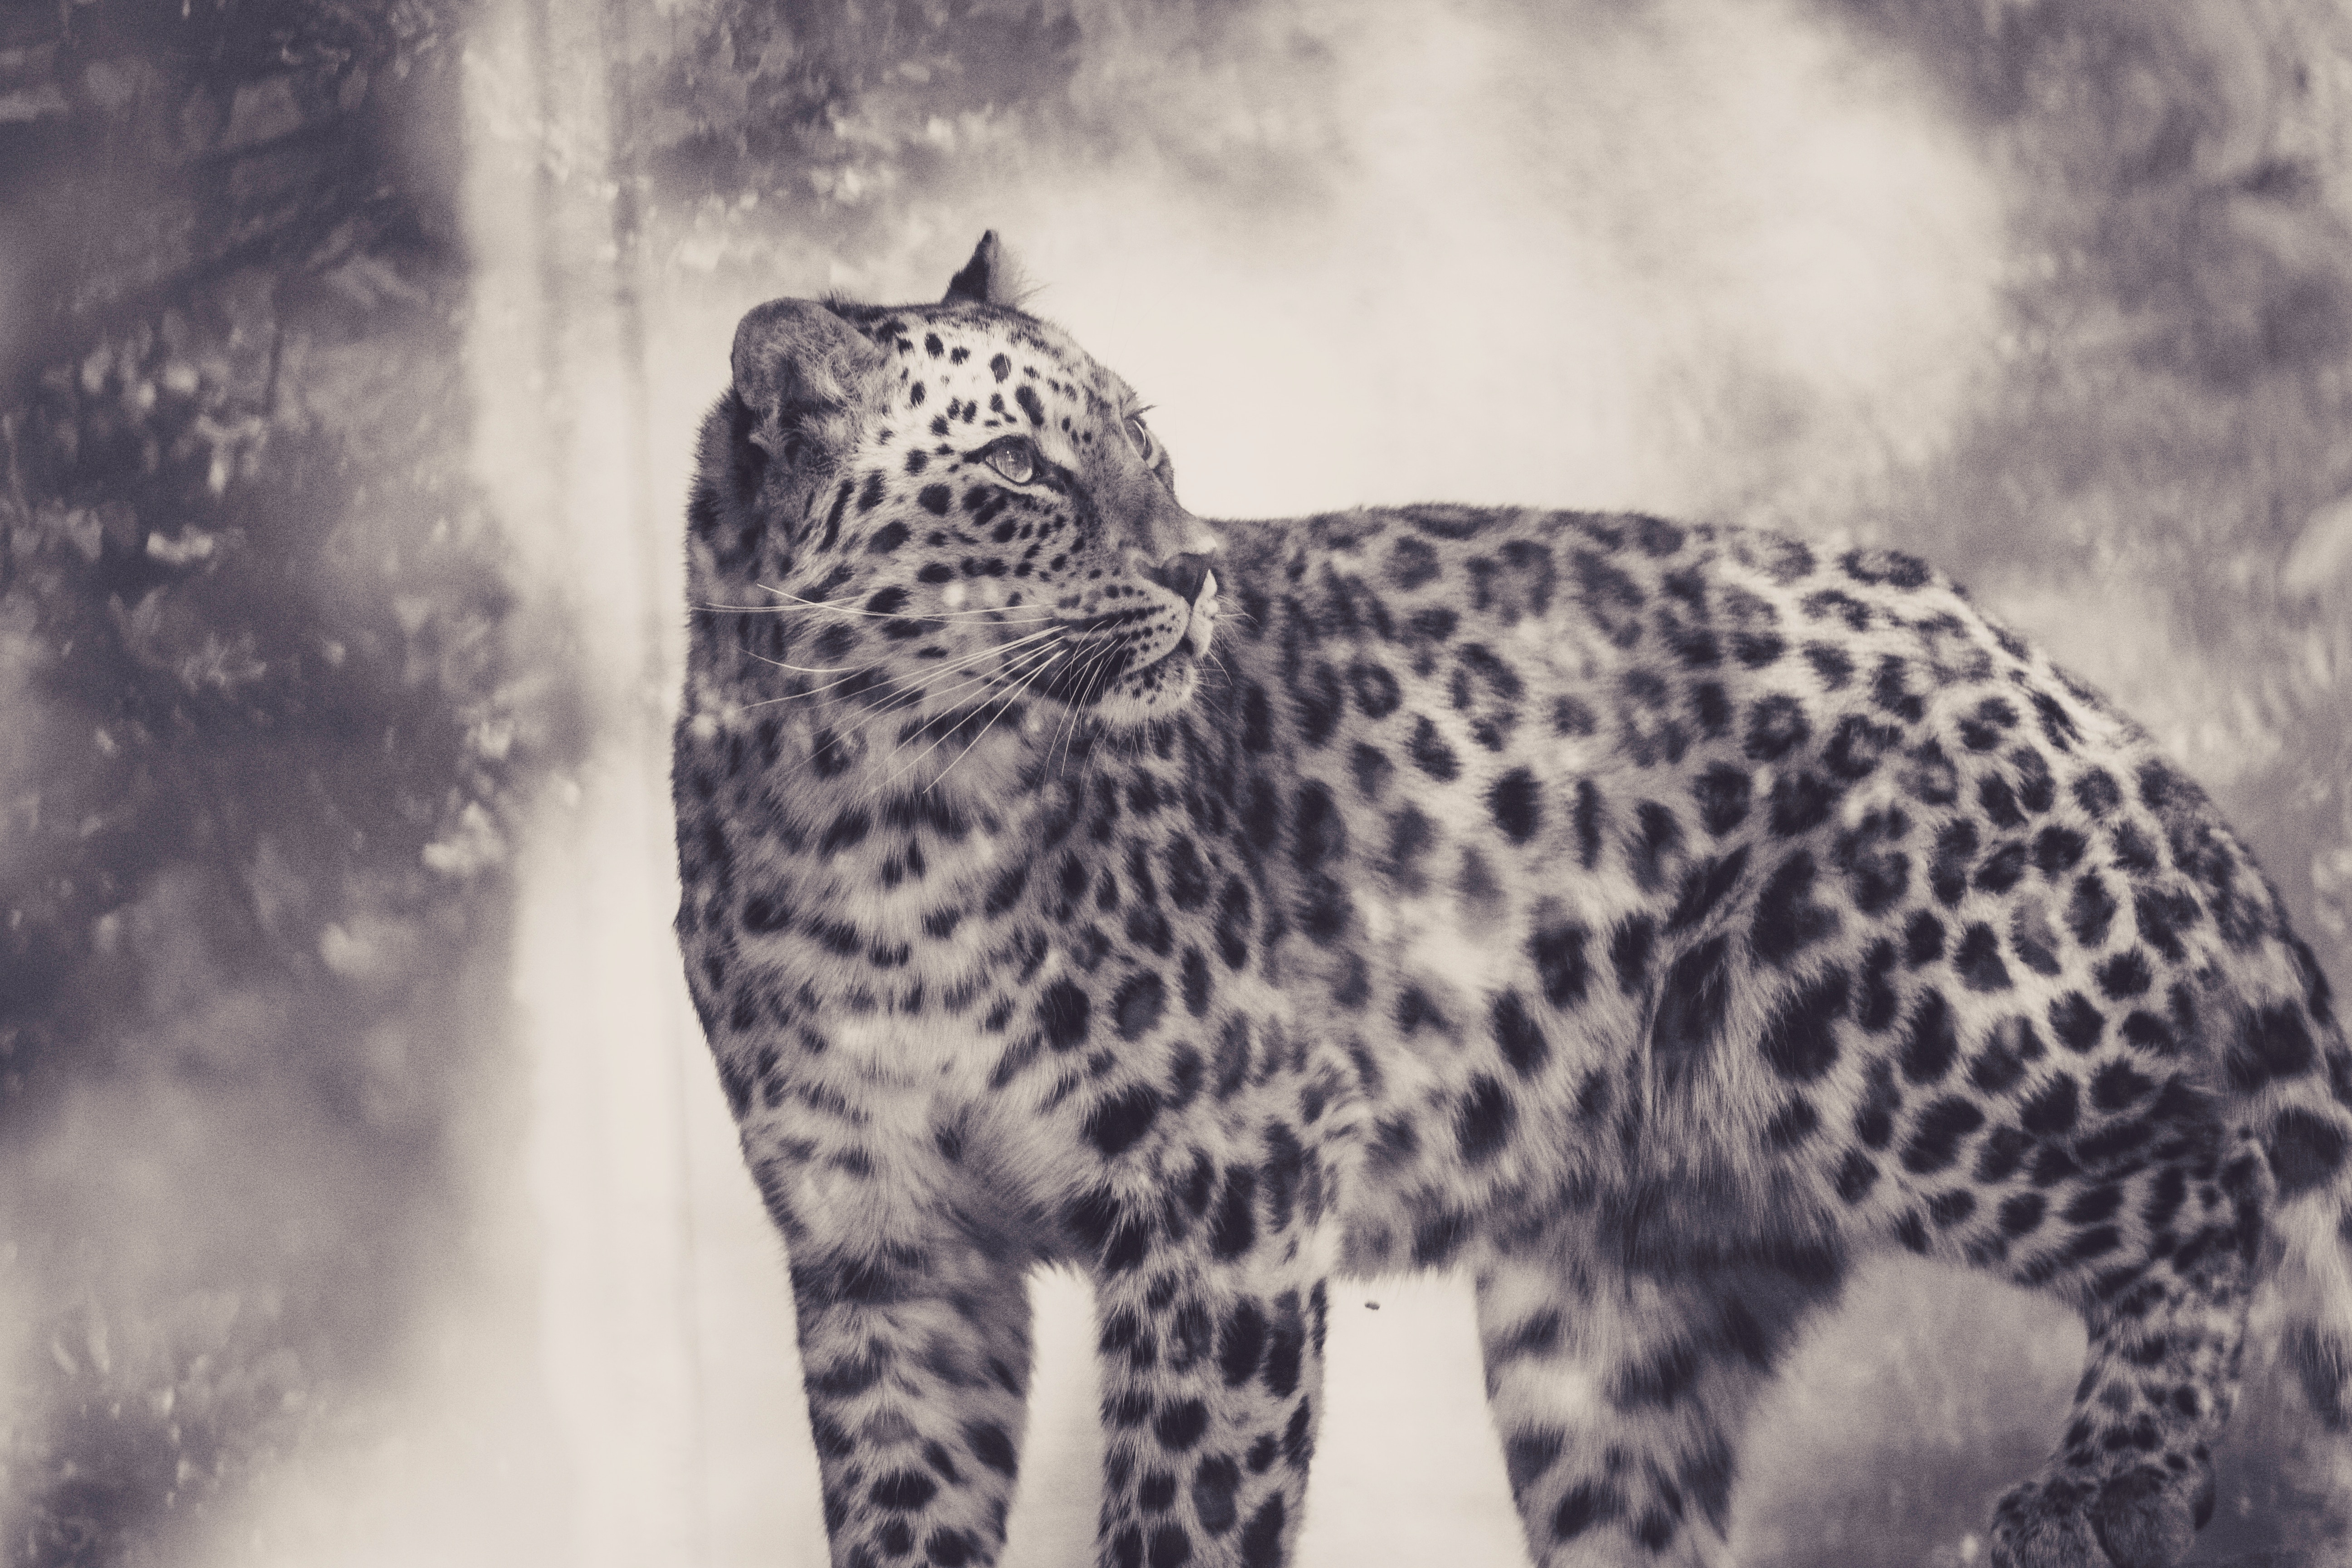 97681 download wallpaper Animals, Leopard, Bw, Chb, Predator, Big Cat screensavers and pictures for free